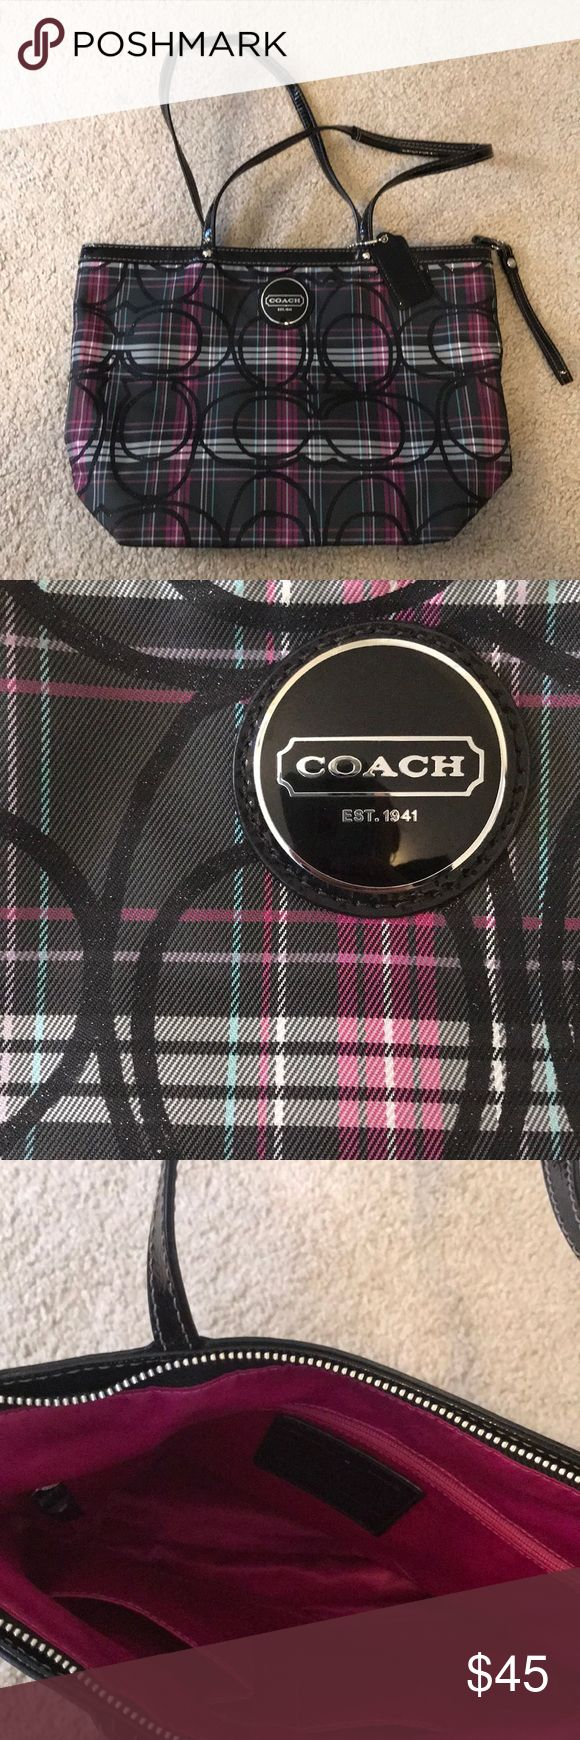 Coach tote bag Magenta, grey and white plaid tote bag with patent leather straps and glittery C's. Gently worn and in very good condition. Definitely an eye catching accessory. Coach Bags Totes